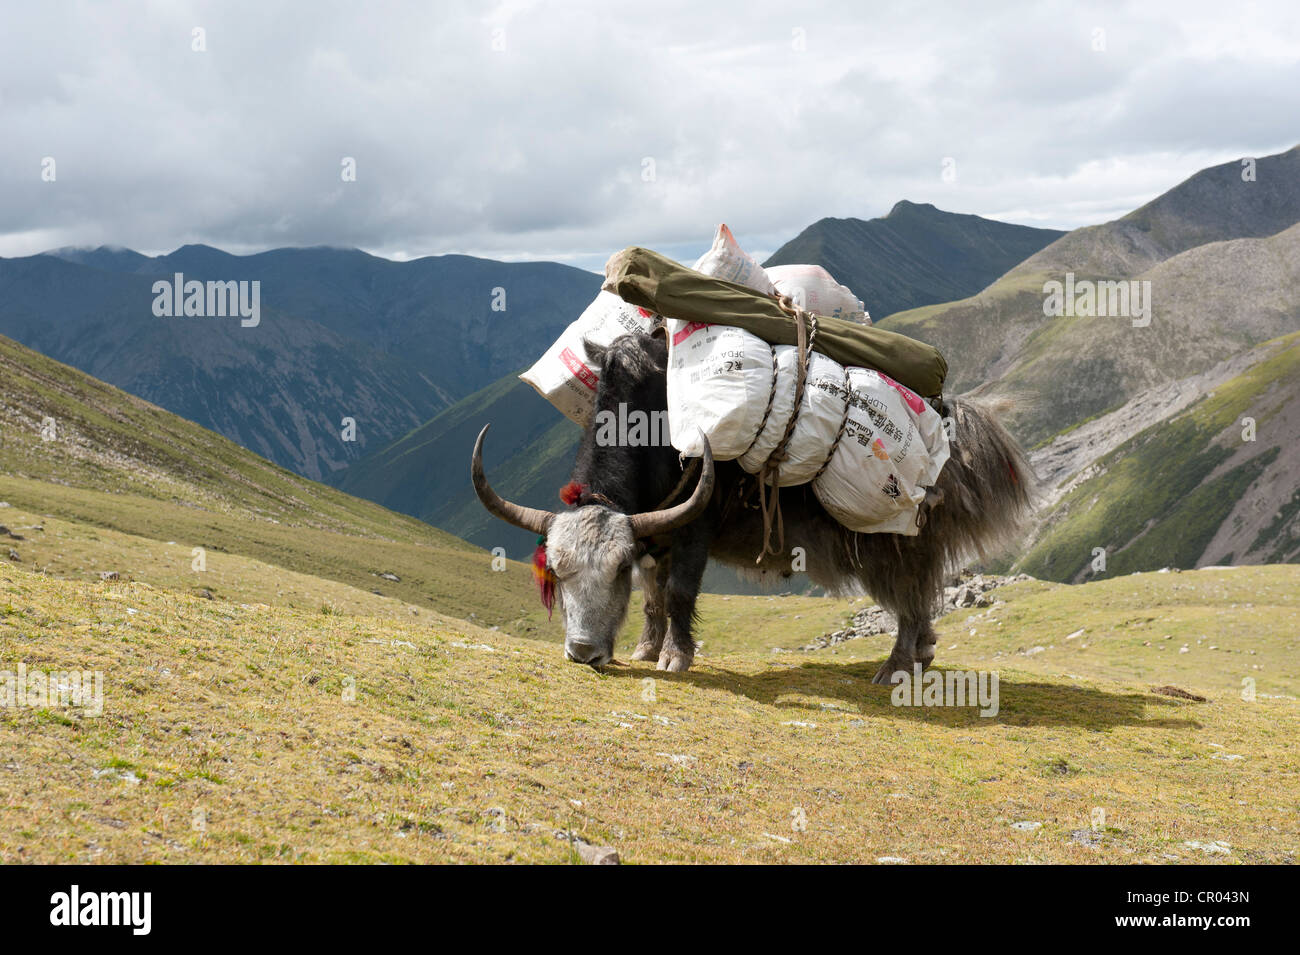 Loaded Yak (Bos mutus) grazing on the grassland in front of high mountains, near the Chitu-La Pass, Himalaya Range - Stock Image